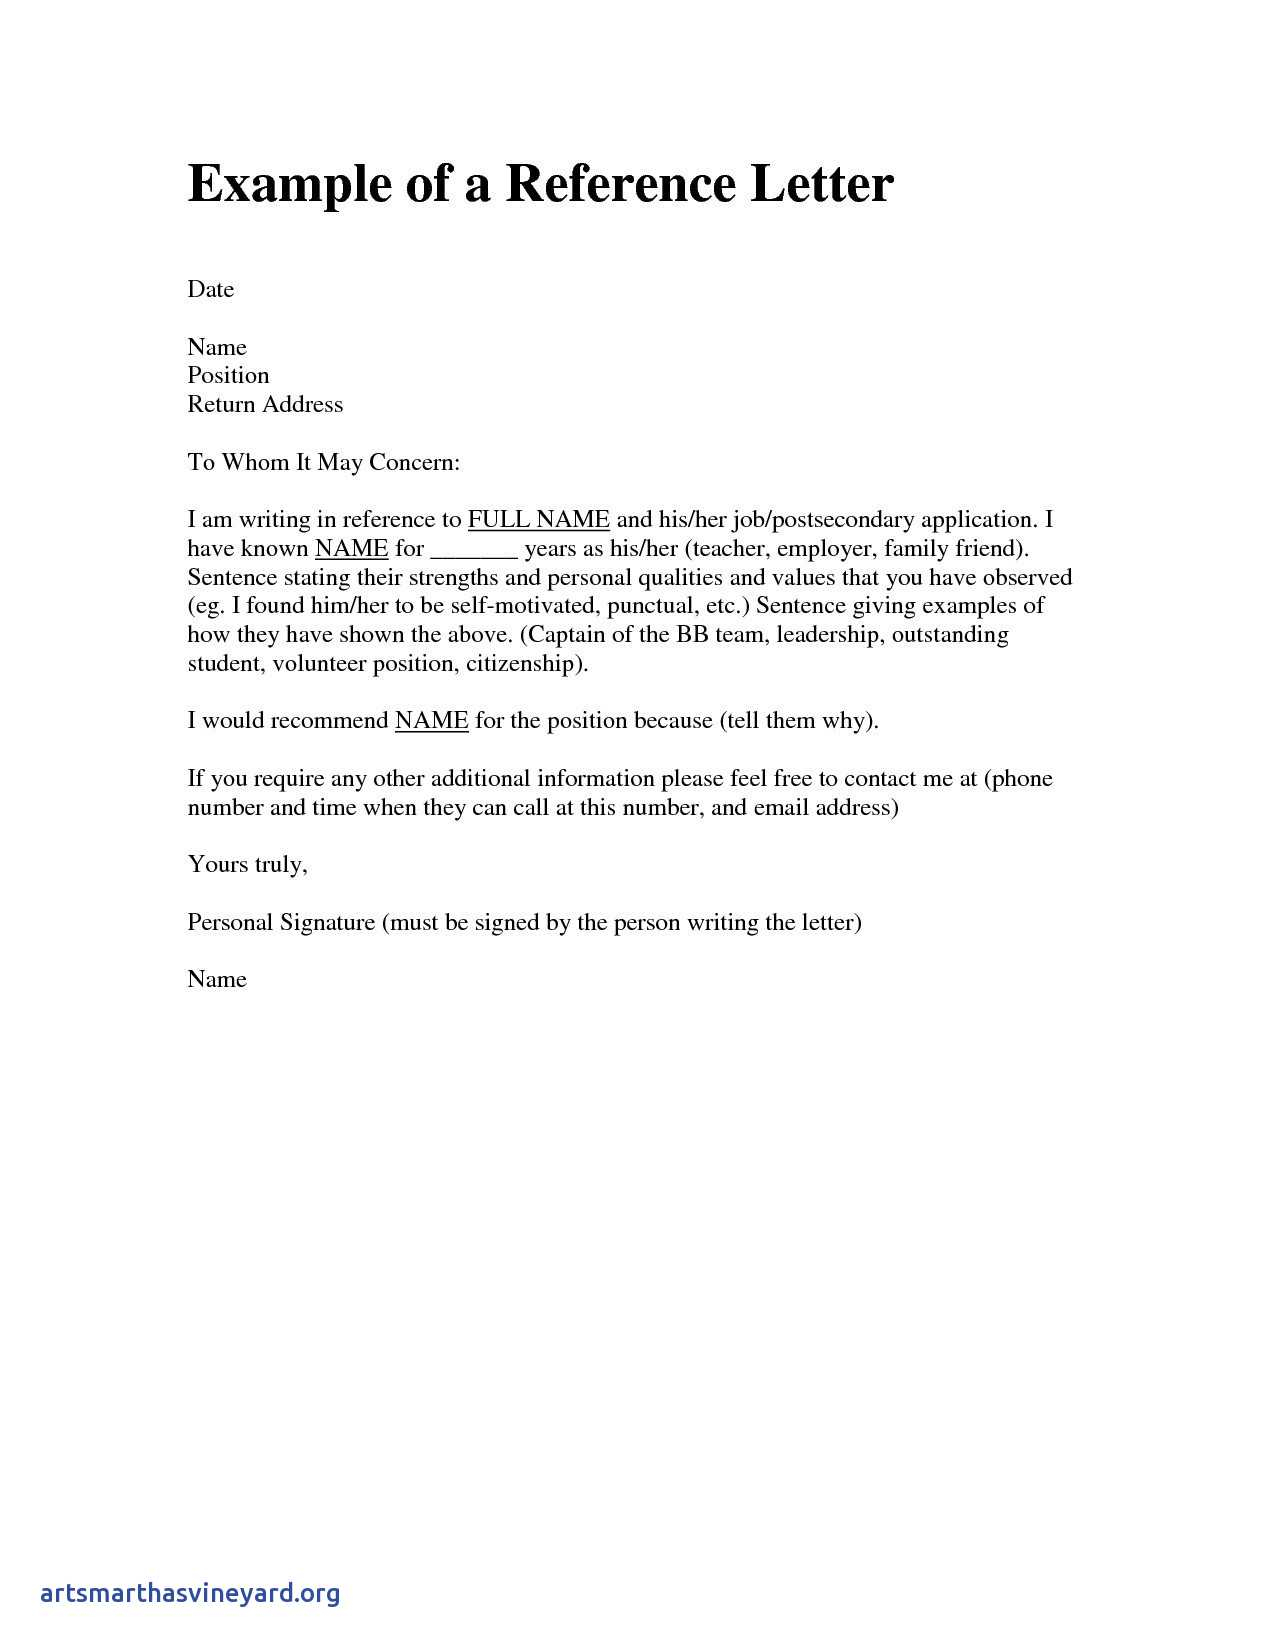 Rental Reference Letter From Friend Template - Luxury Character Reference Letter for A Friend Sample Scheme Free